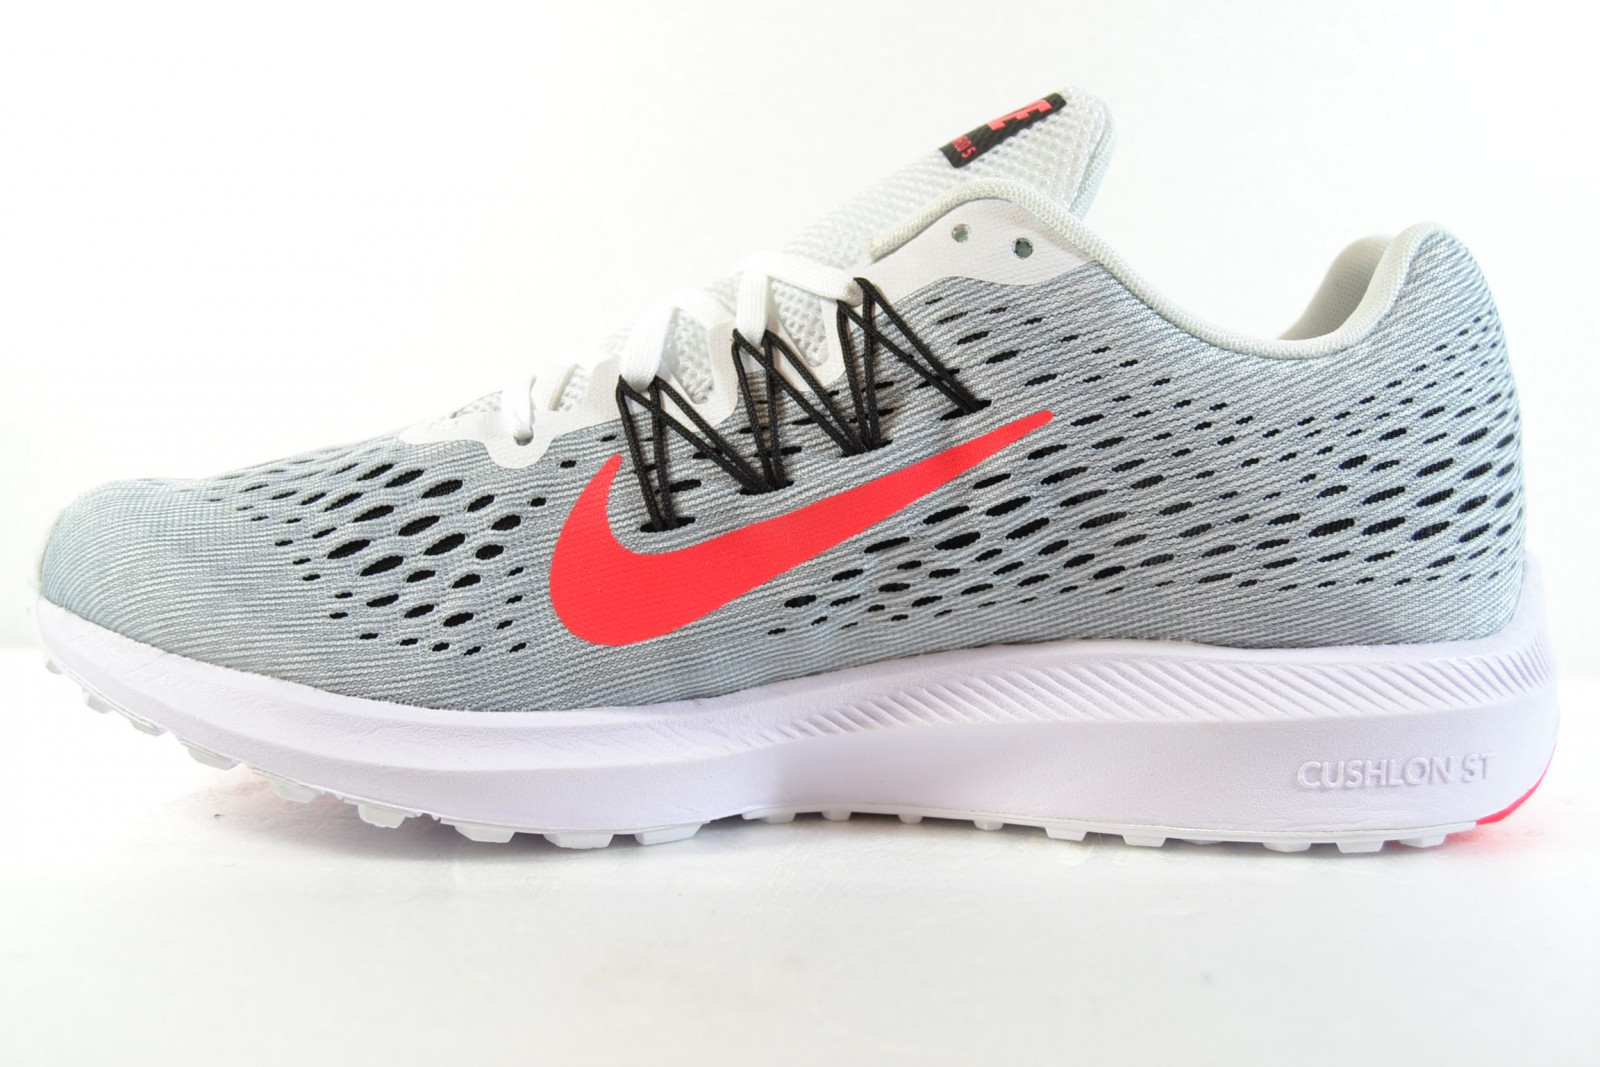 95988198bff4 NIKE ZOOM WINFLO 5 - Roba SHOES SRL